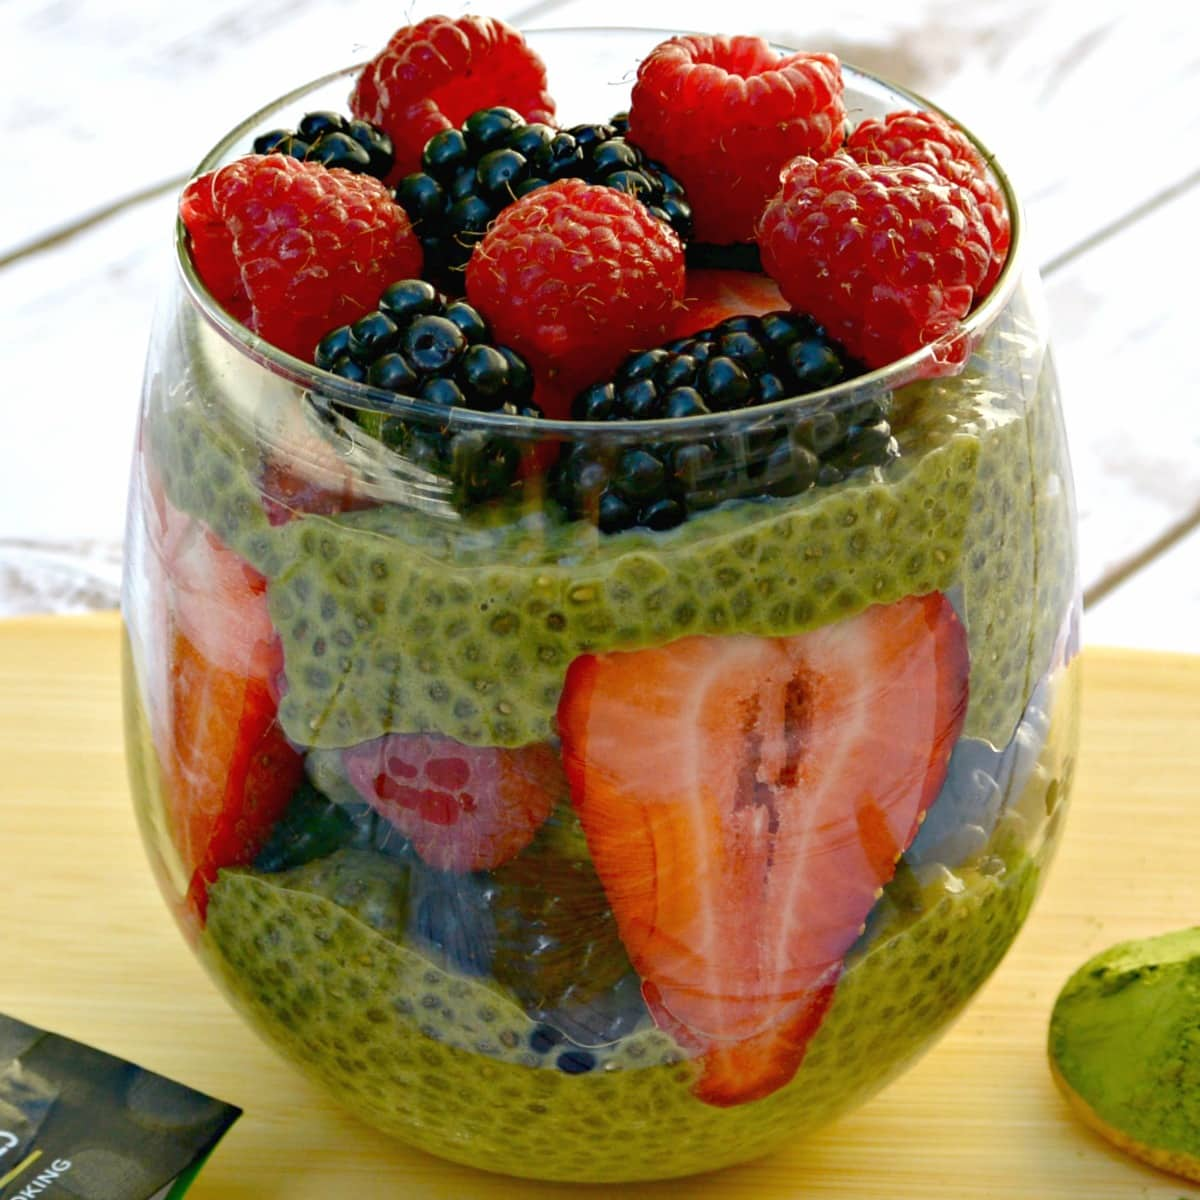 Matcha green tea chia pudding topped with raspberries, blackberries, and strawberries